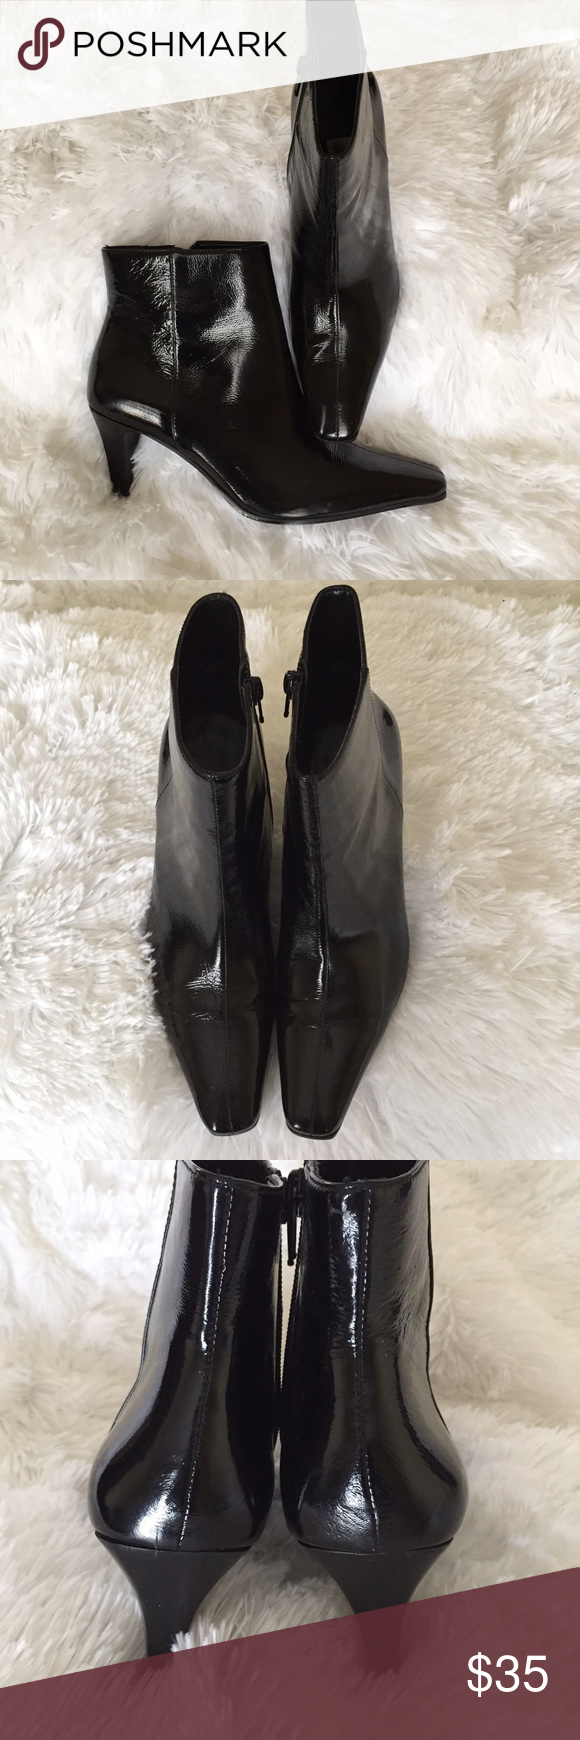 Etienne Aigner Black Booties Shiny black Etienne Aigner black ankle boots. Etienne Aigner Shoes Ankle Boots & Booties